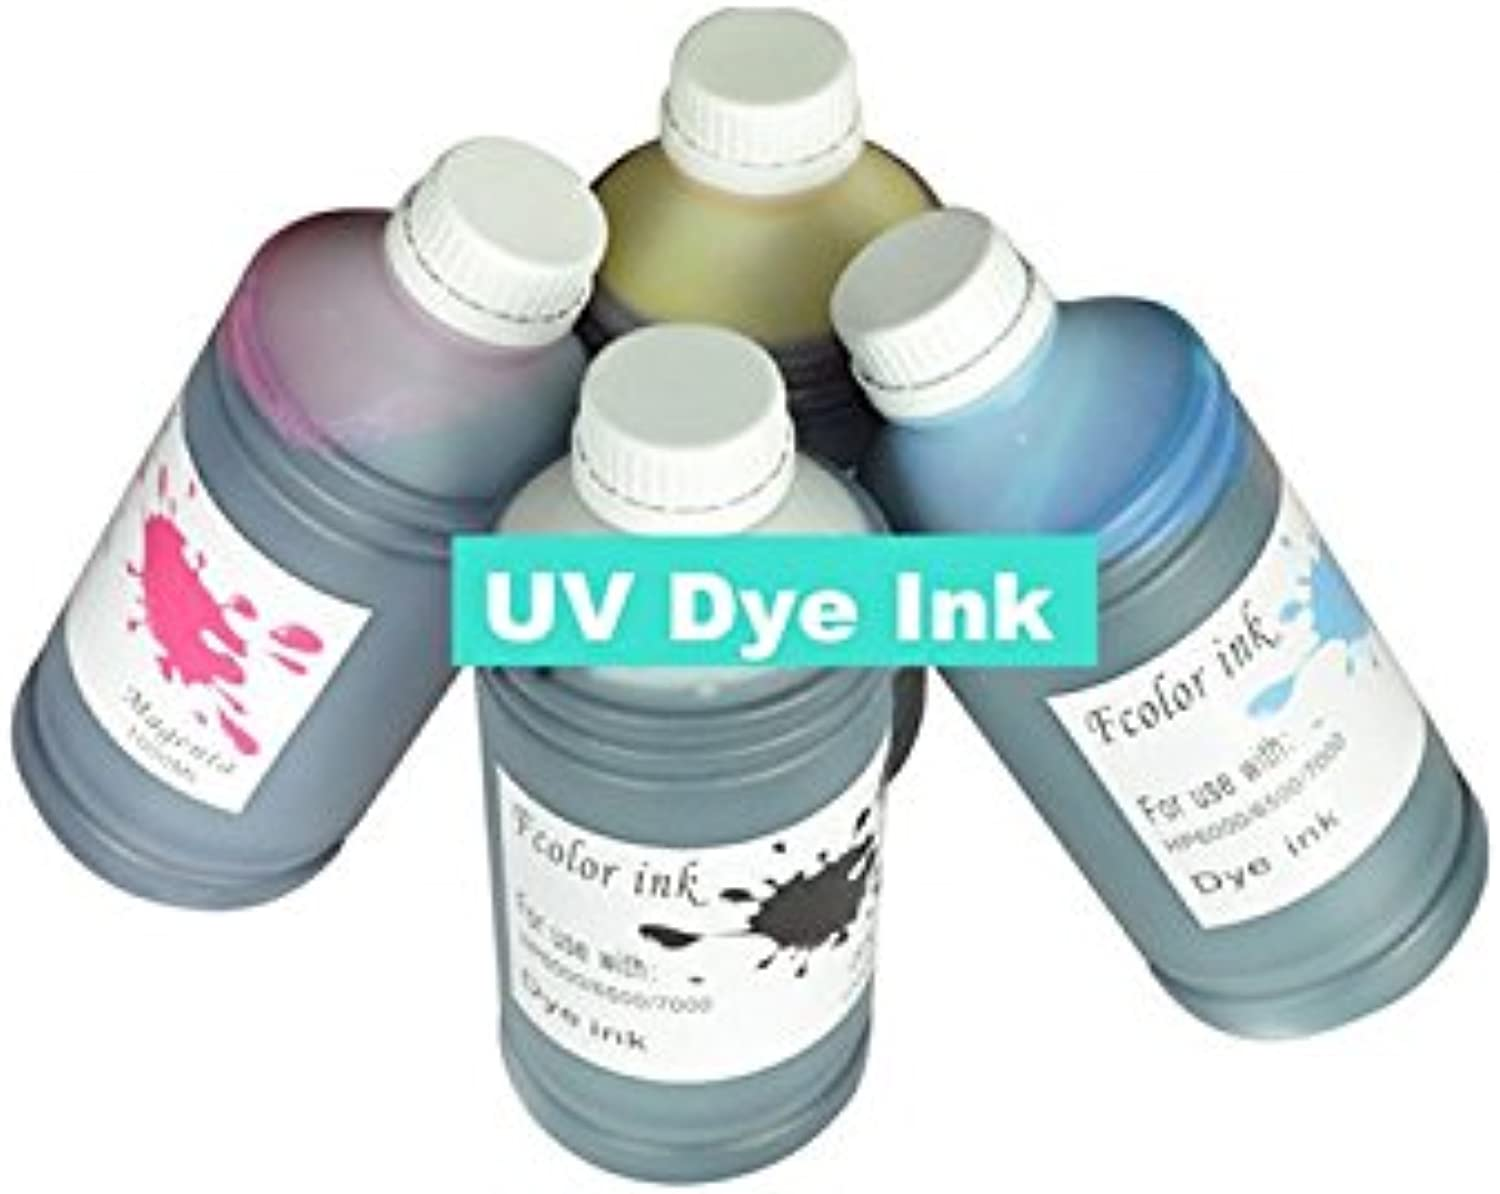 GOWE UV Dye Ink For HP Pro 8500 8000 Printer HP940 hp 940 Ink Refill CISS Refillable Cartridge